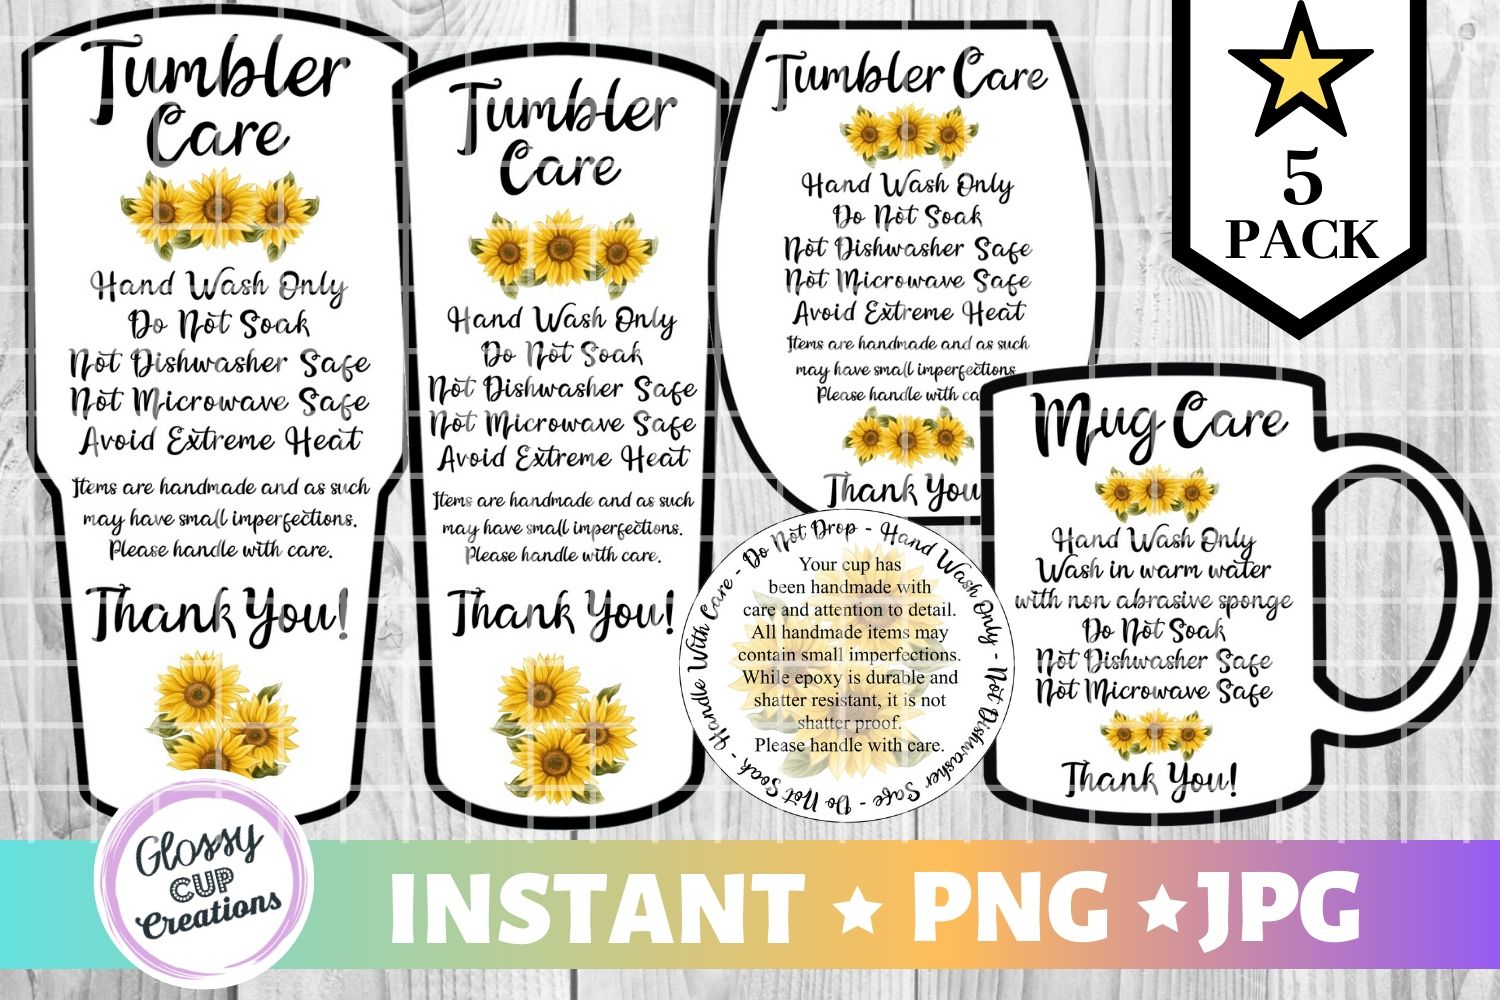 Download Free Tumbler Care Cards Sunflowers Graphic By Suzannecornejo for Cricut Explore, Silhouette and other cutting machines.